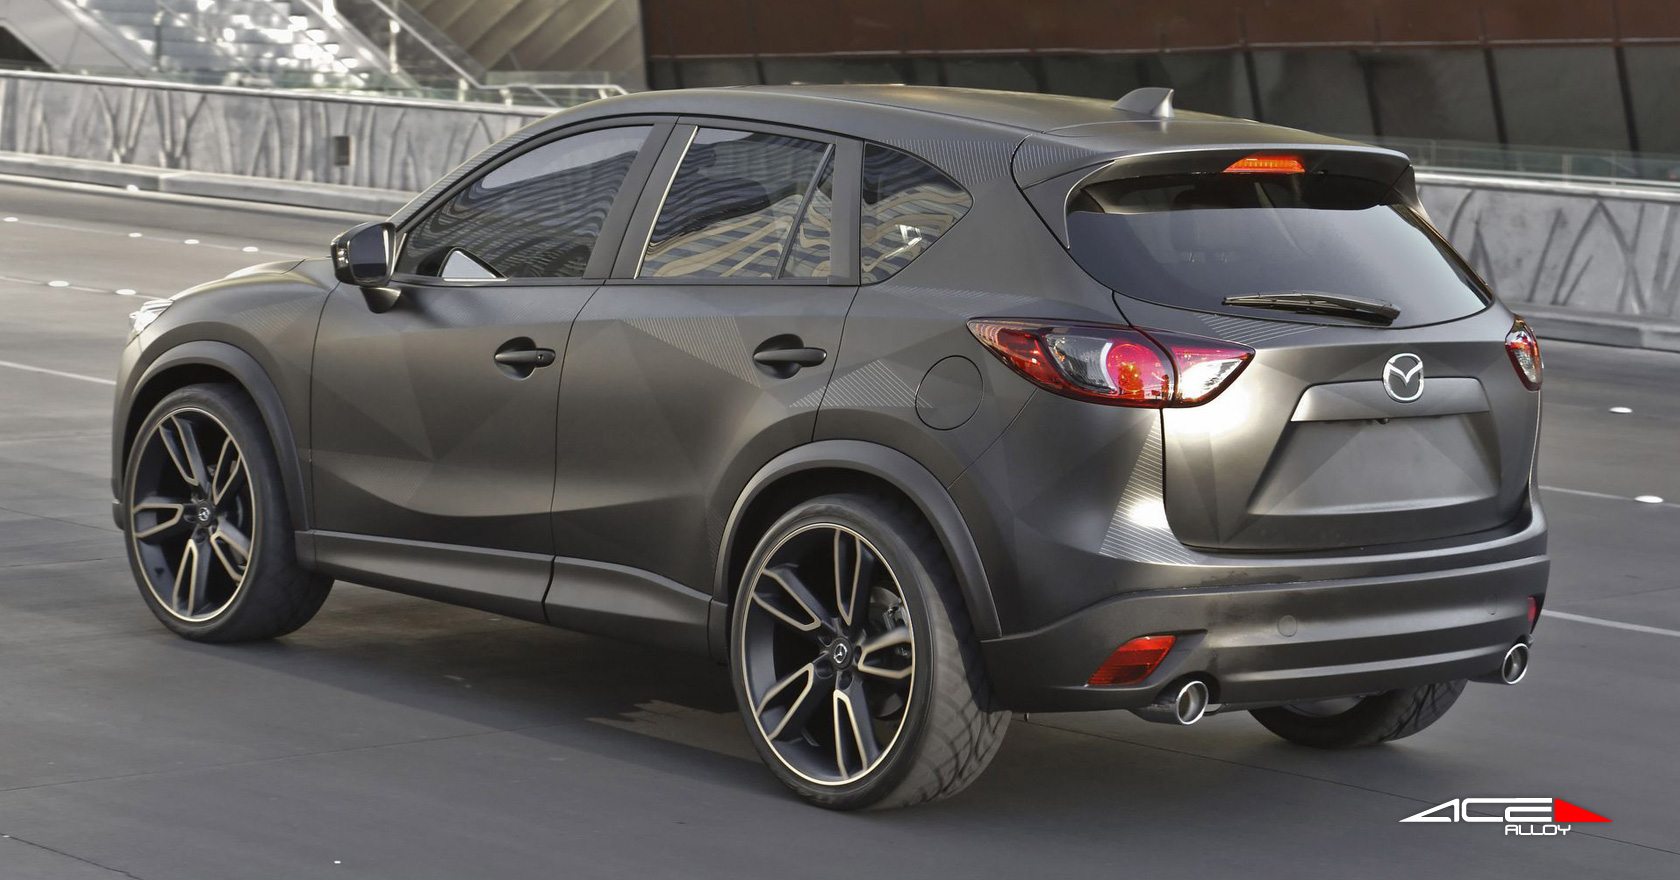 mazda cx 5 urban w 22 22x10 0 front rear matte black with machined face ace. Black Bedroom Furniture Sets. Home Design Ideas